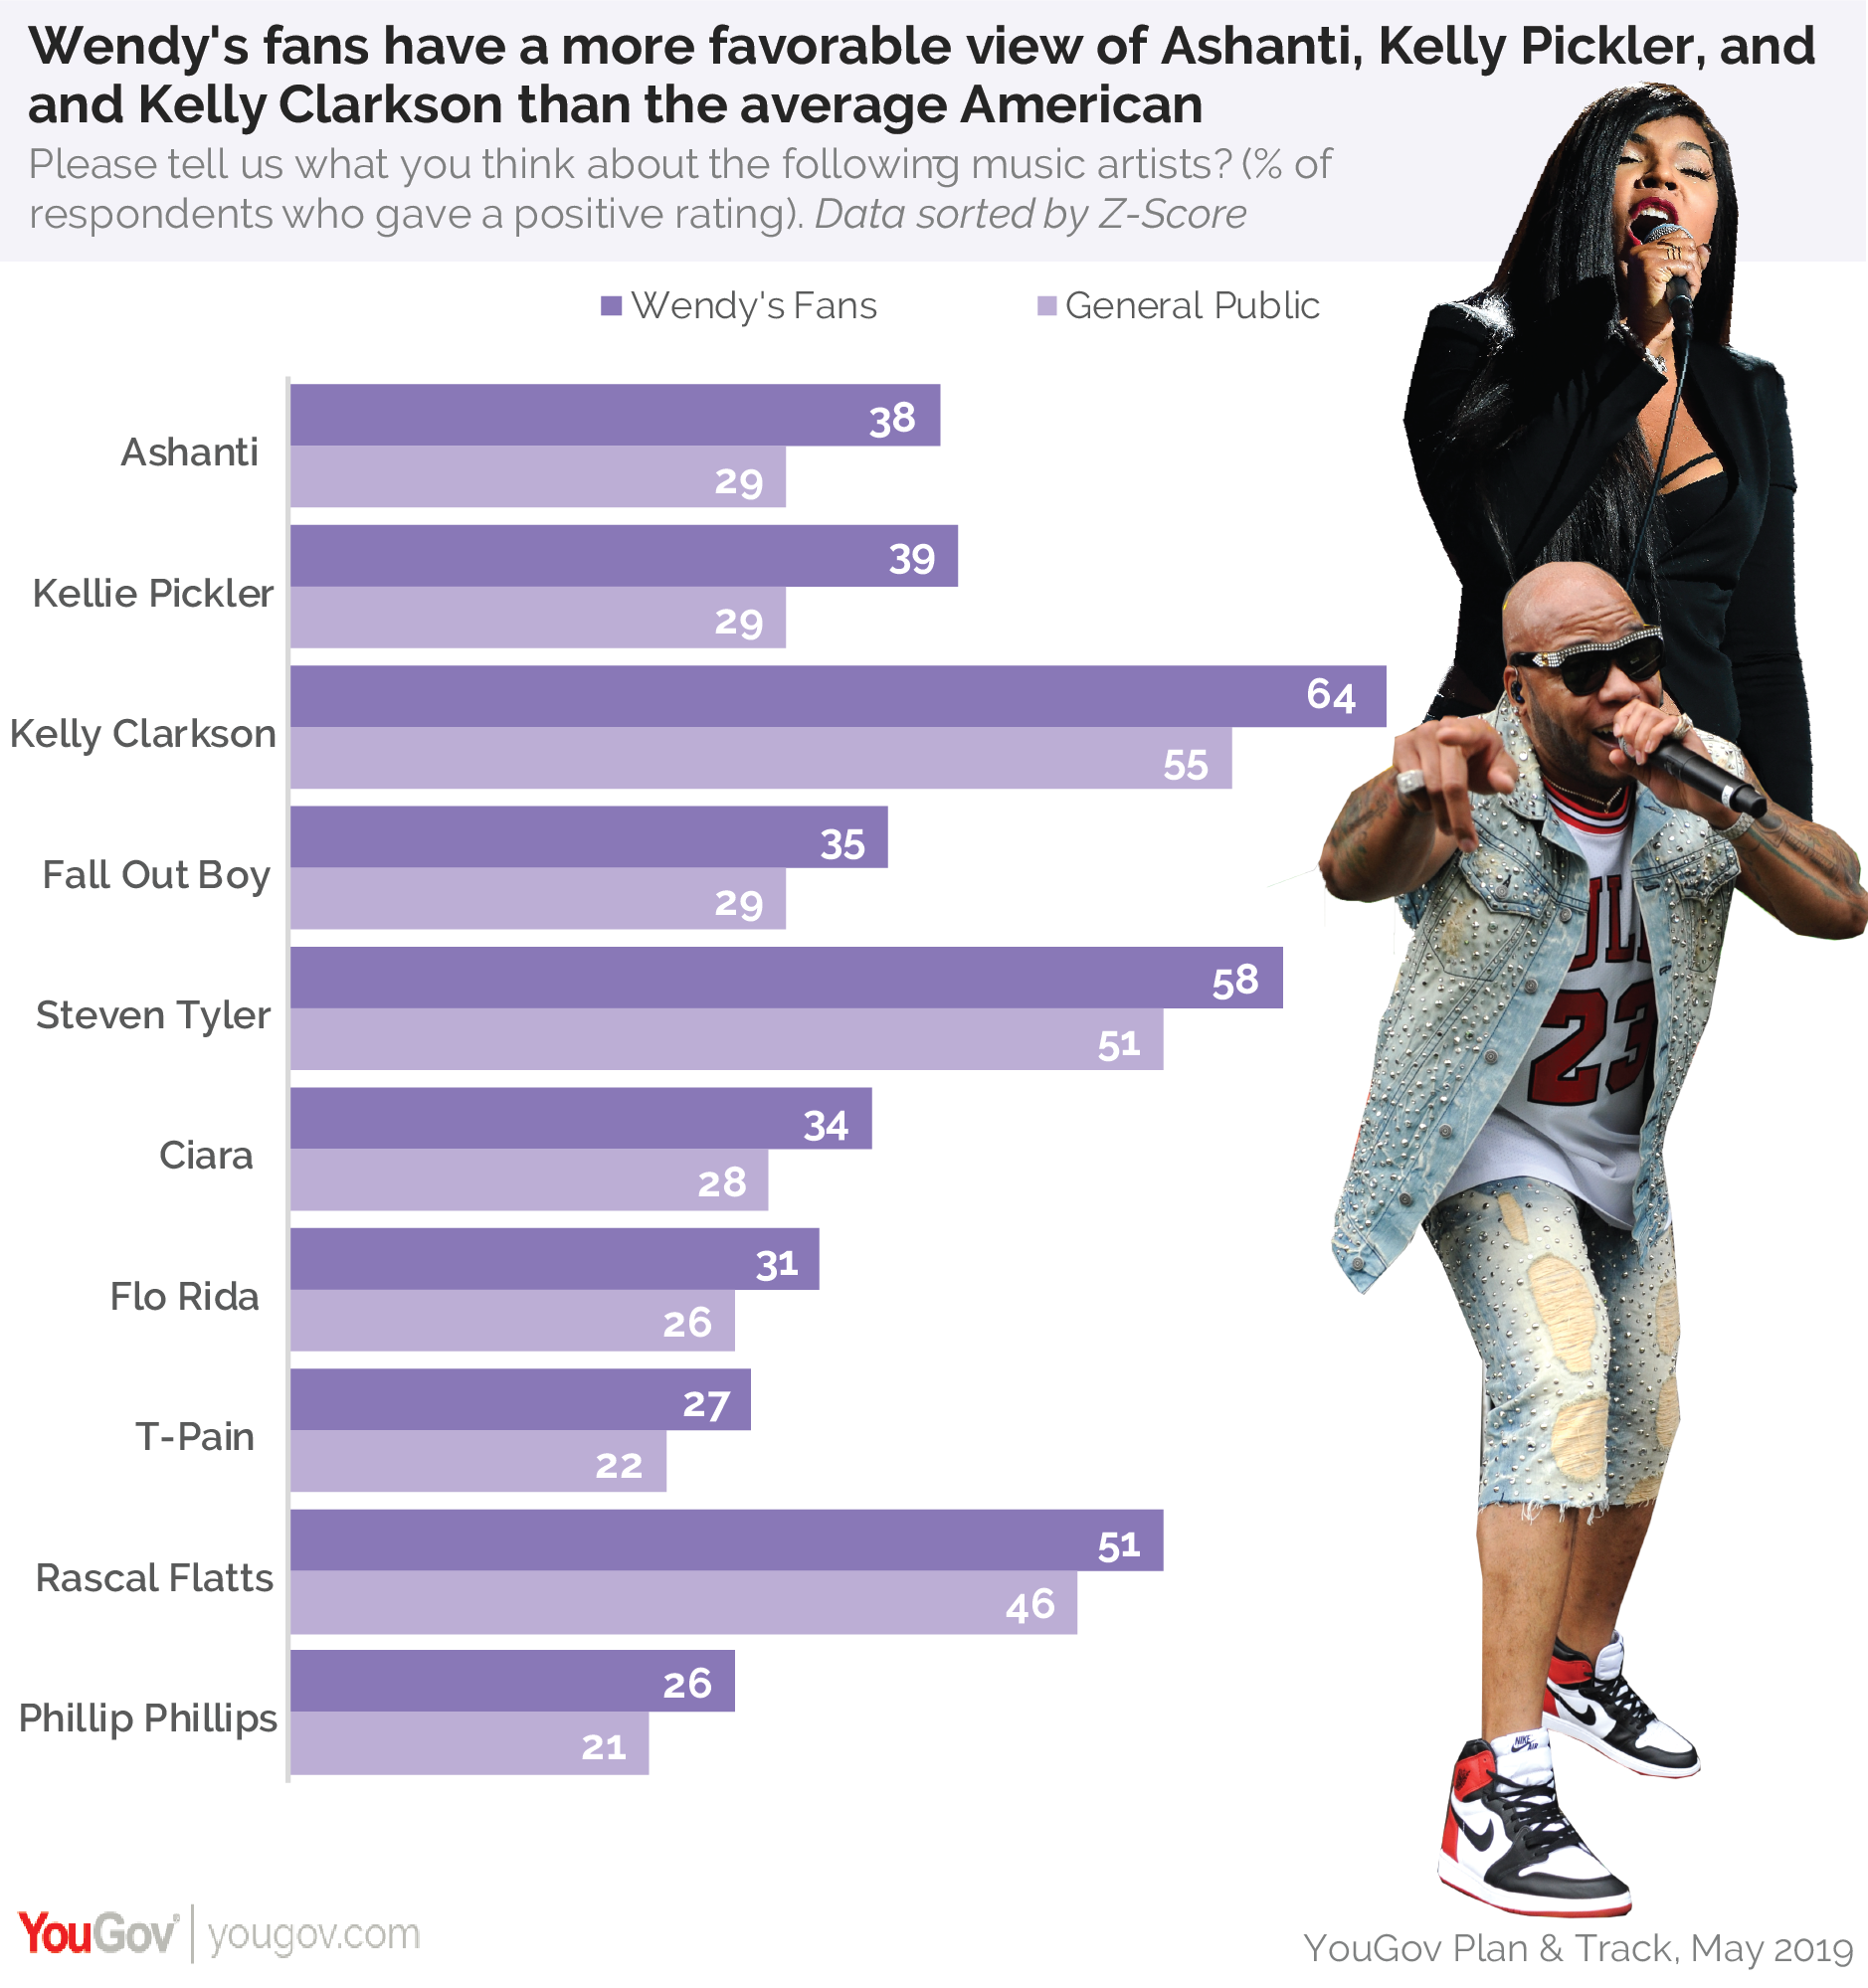 Wendy's fans have a more favorable view of Ashanti, Kelly Pickler, and Kelly Clarkson than the average American